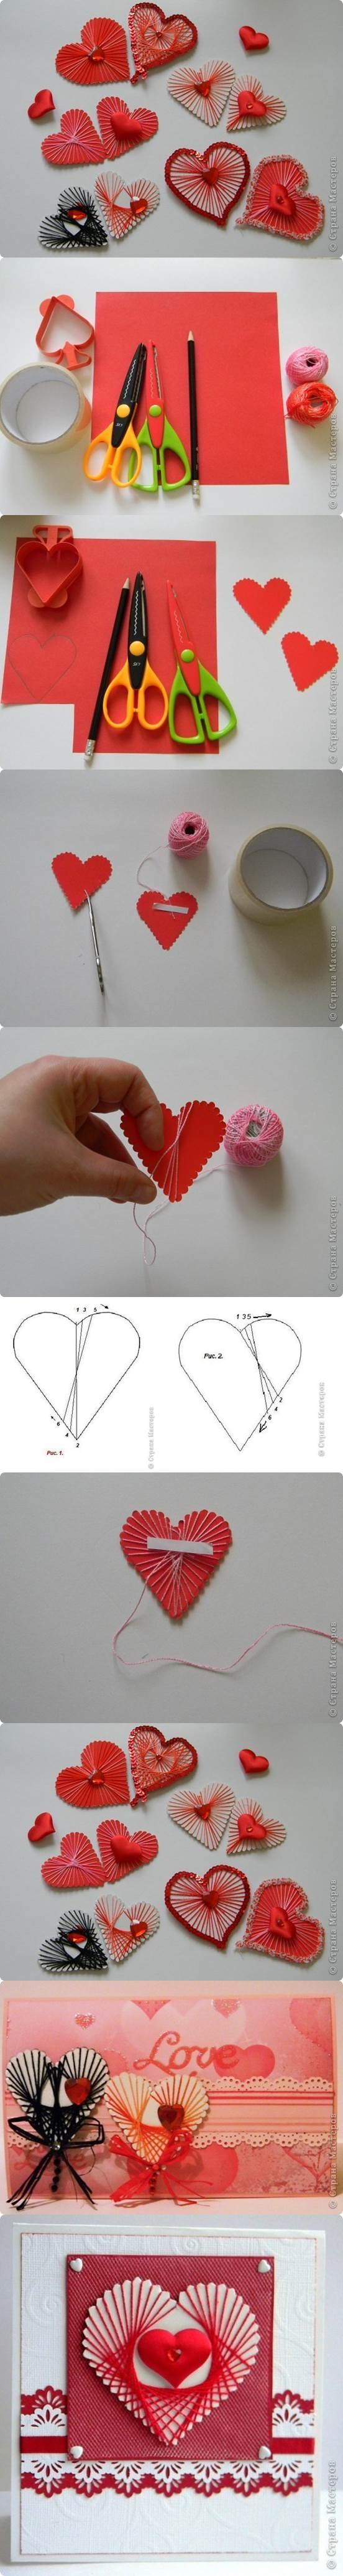 DIY Unique Yarn Heart Decoration 2